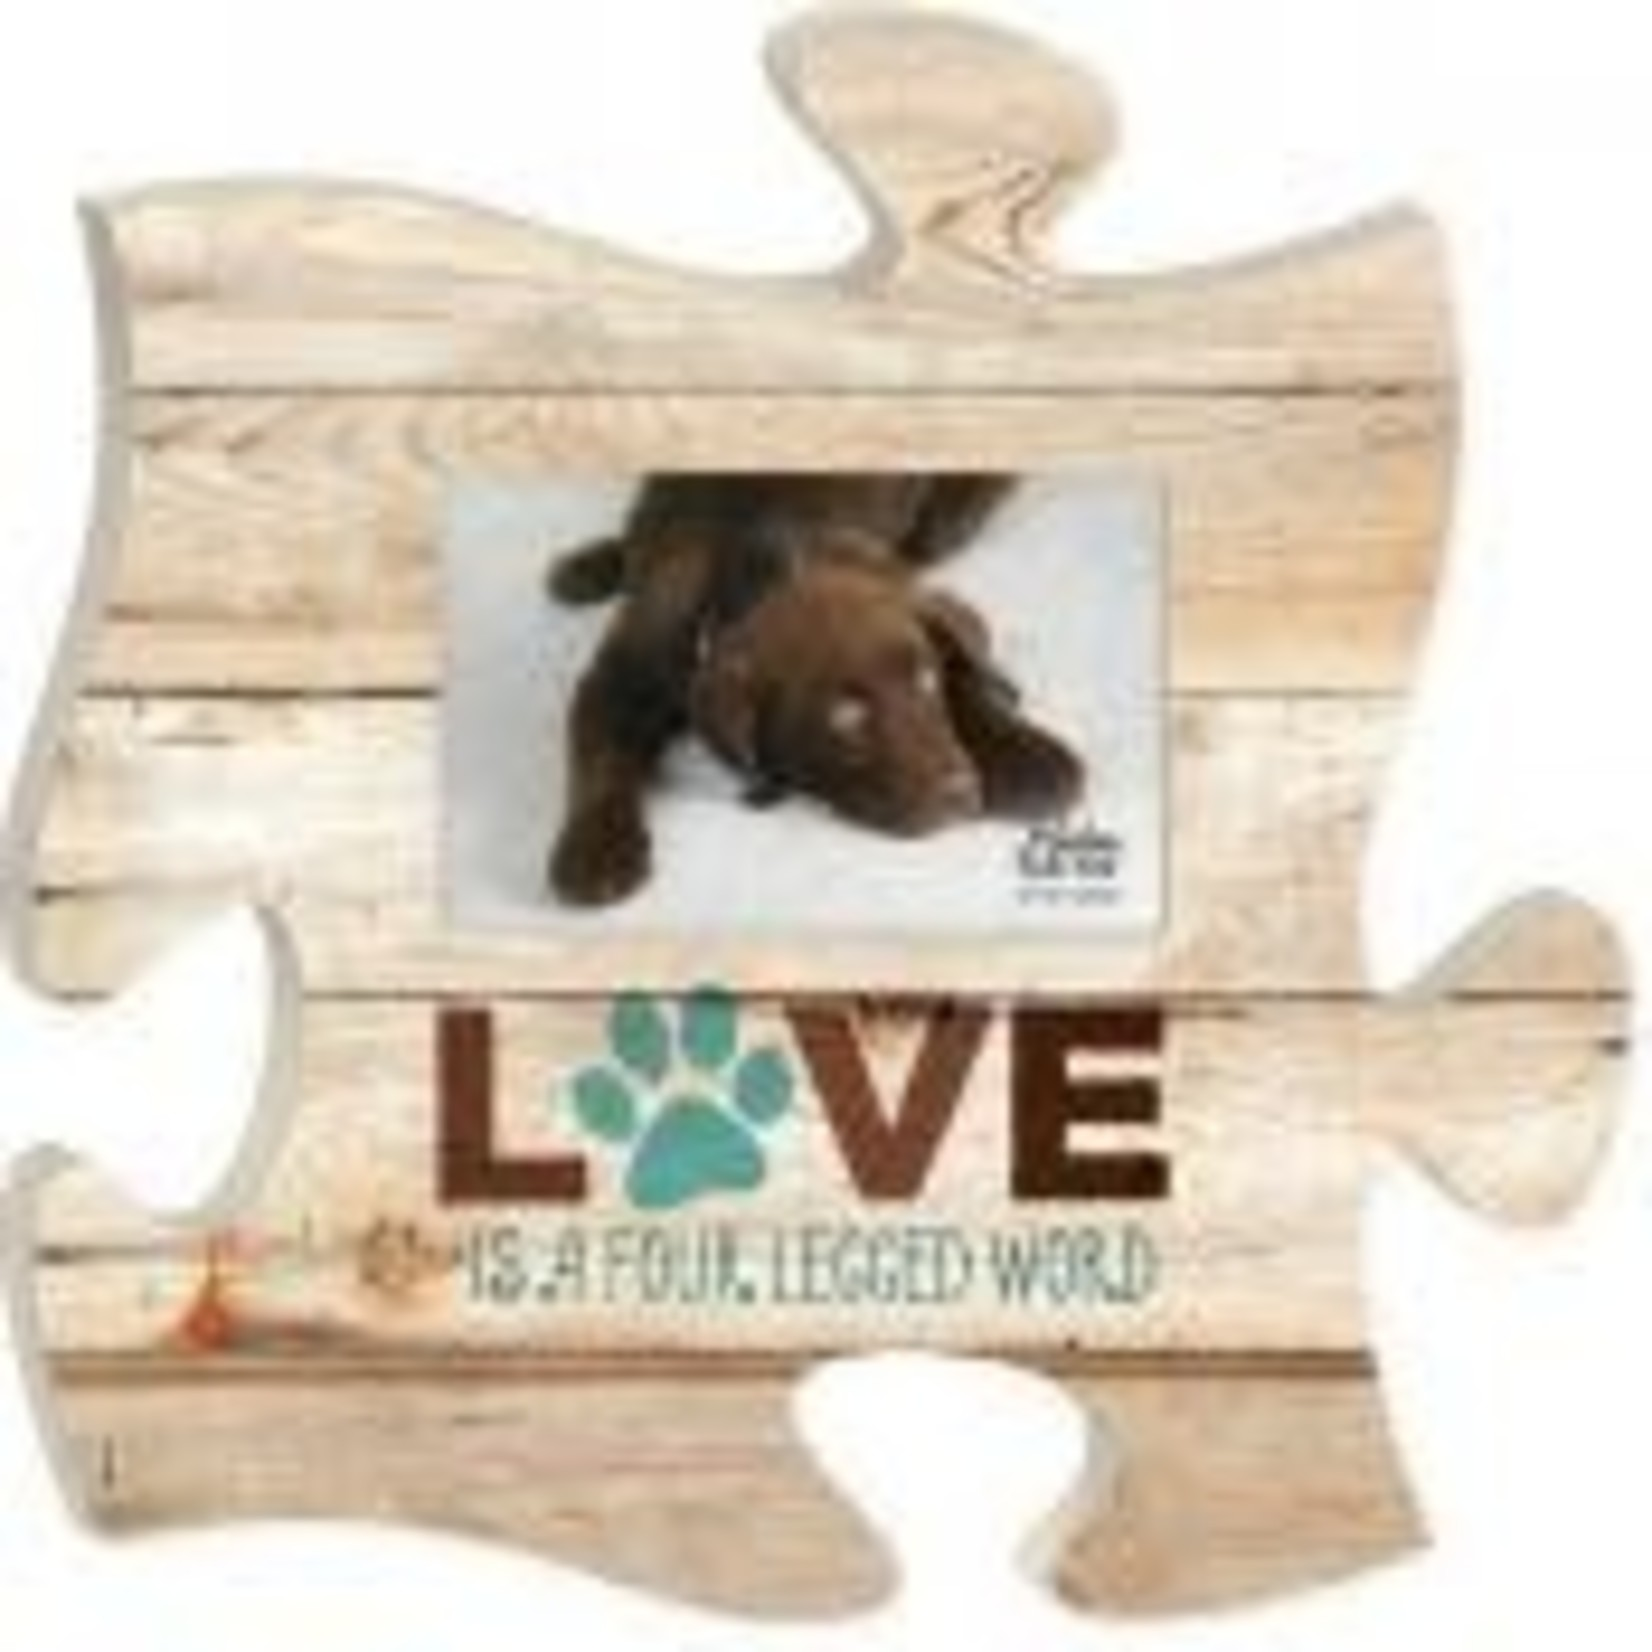 Puzzle - Love Is 4-Legged